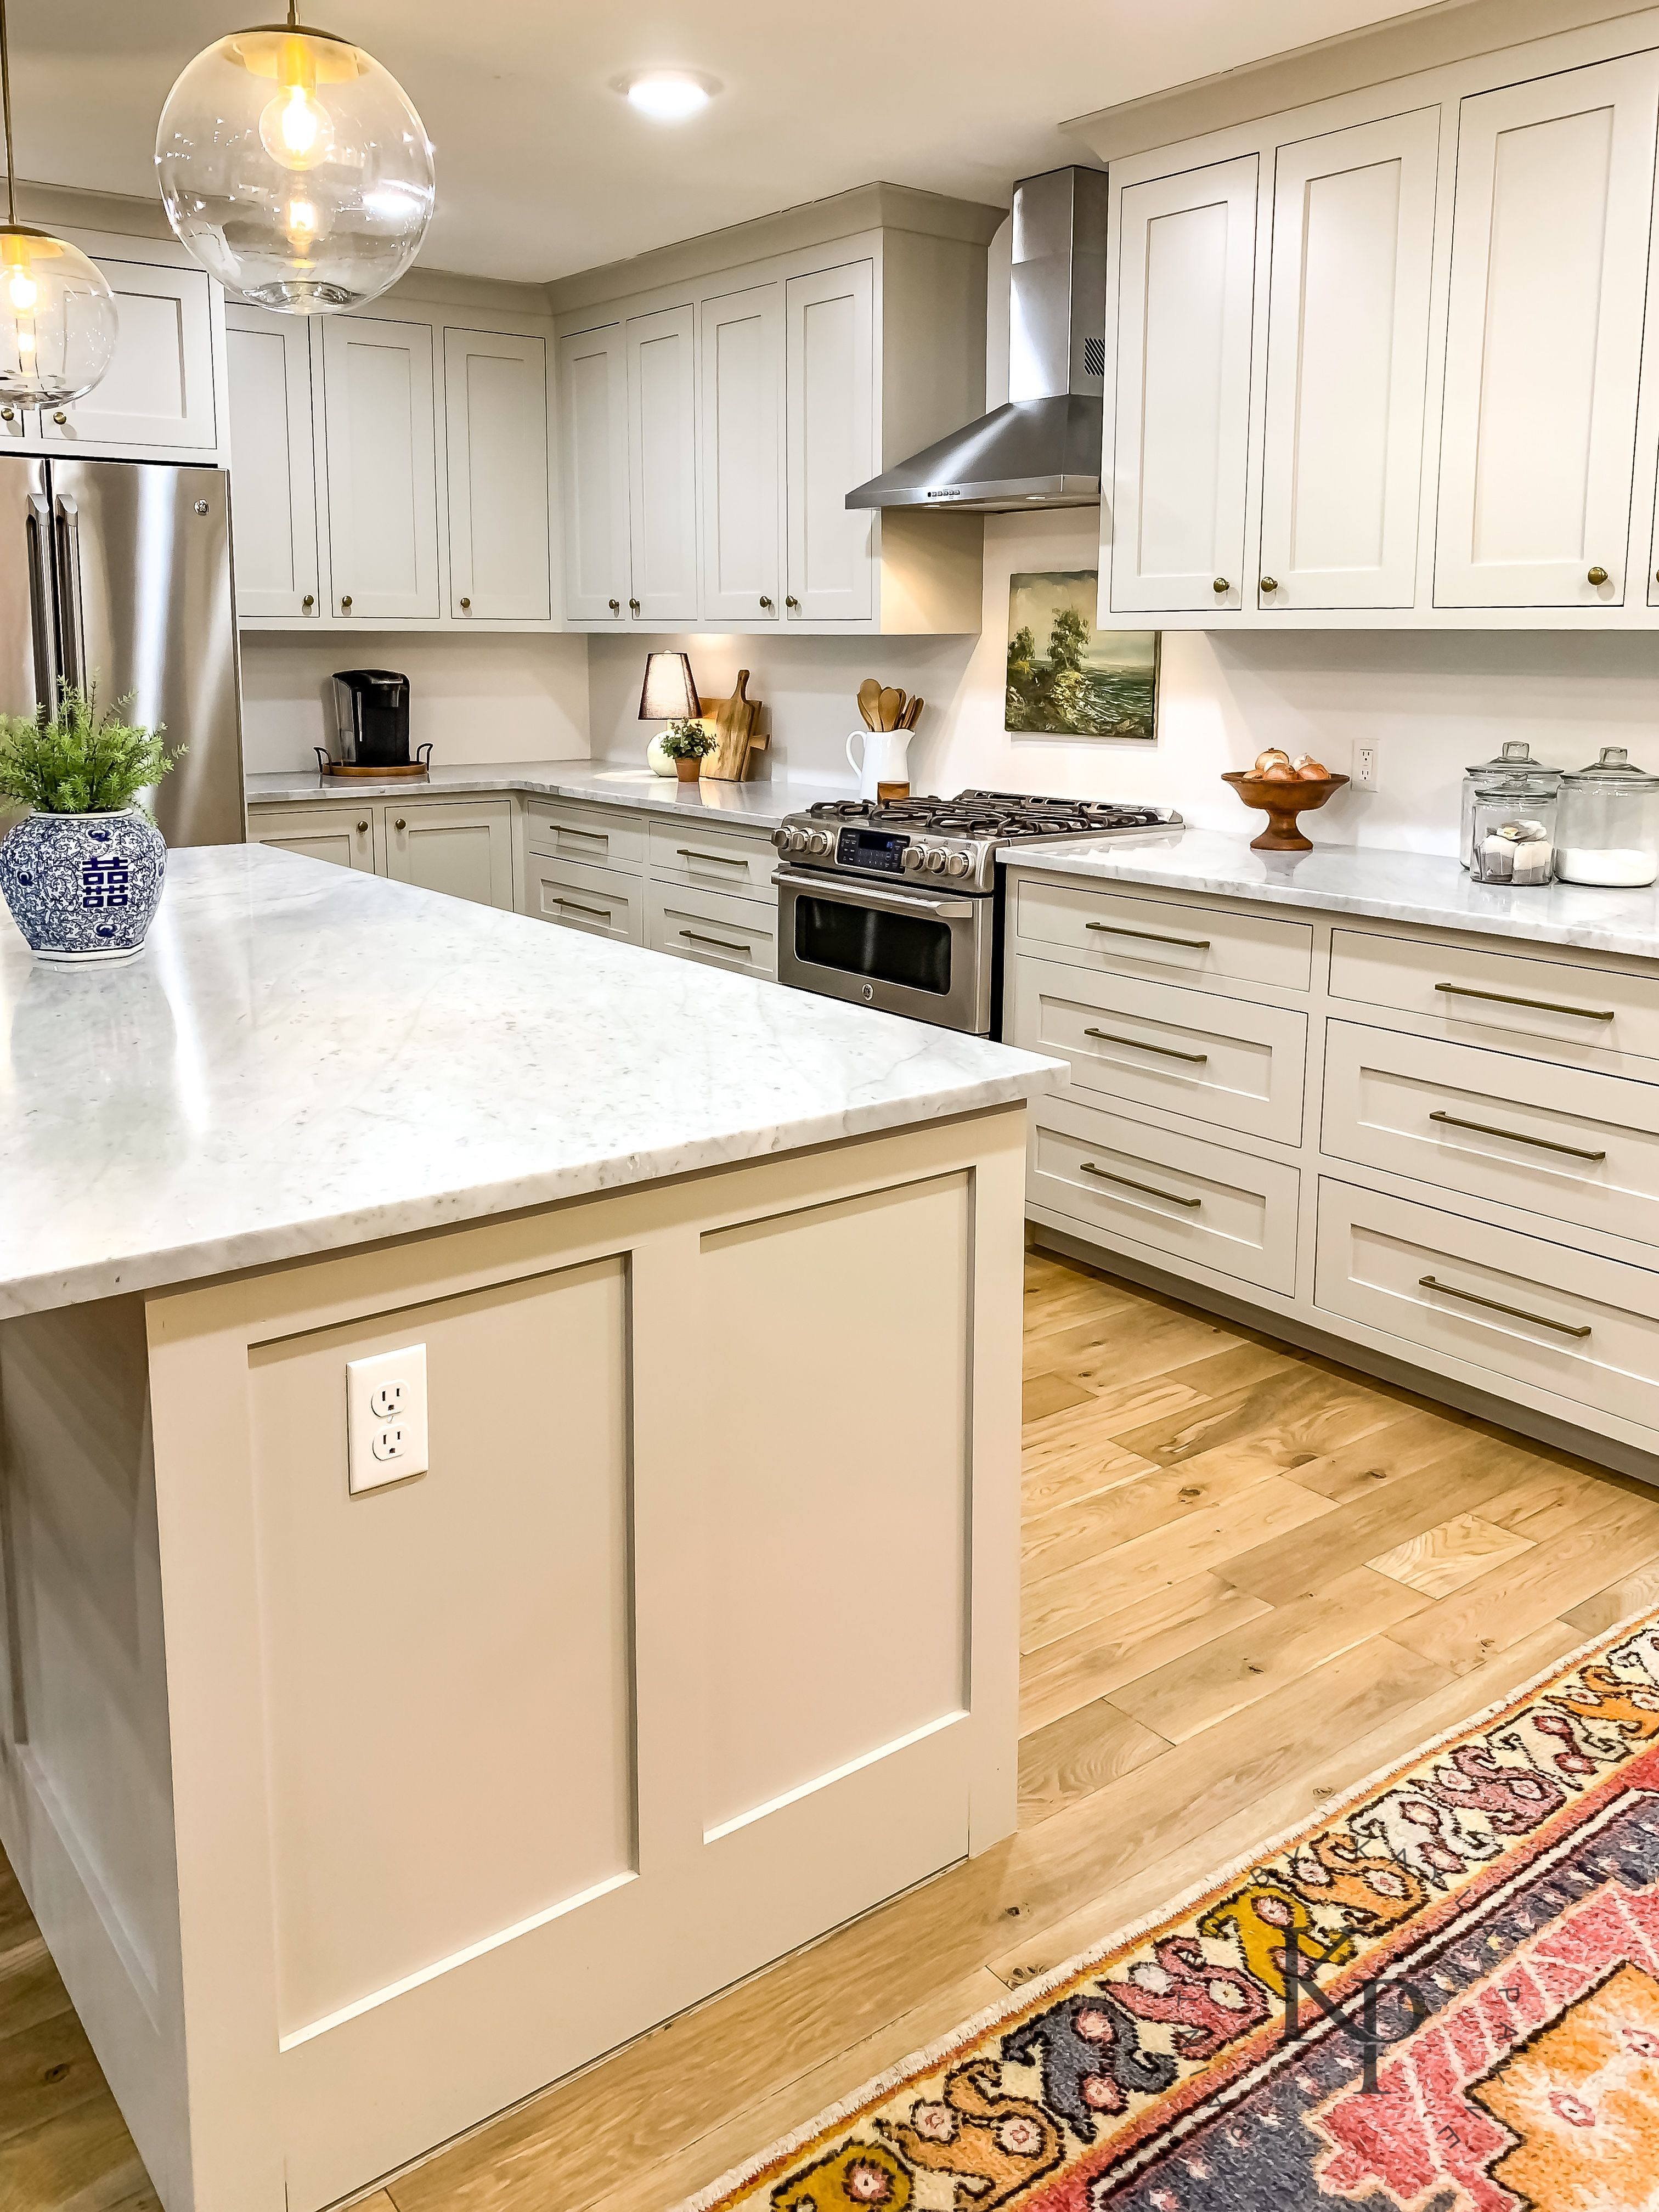 Revere Pewter Kitchen Cabinets Painted By Kayla Payne Revere Pewter Kitchen Kitchen Cupboards Paint Kitchen Cabinets